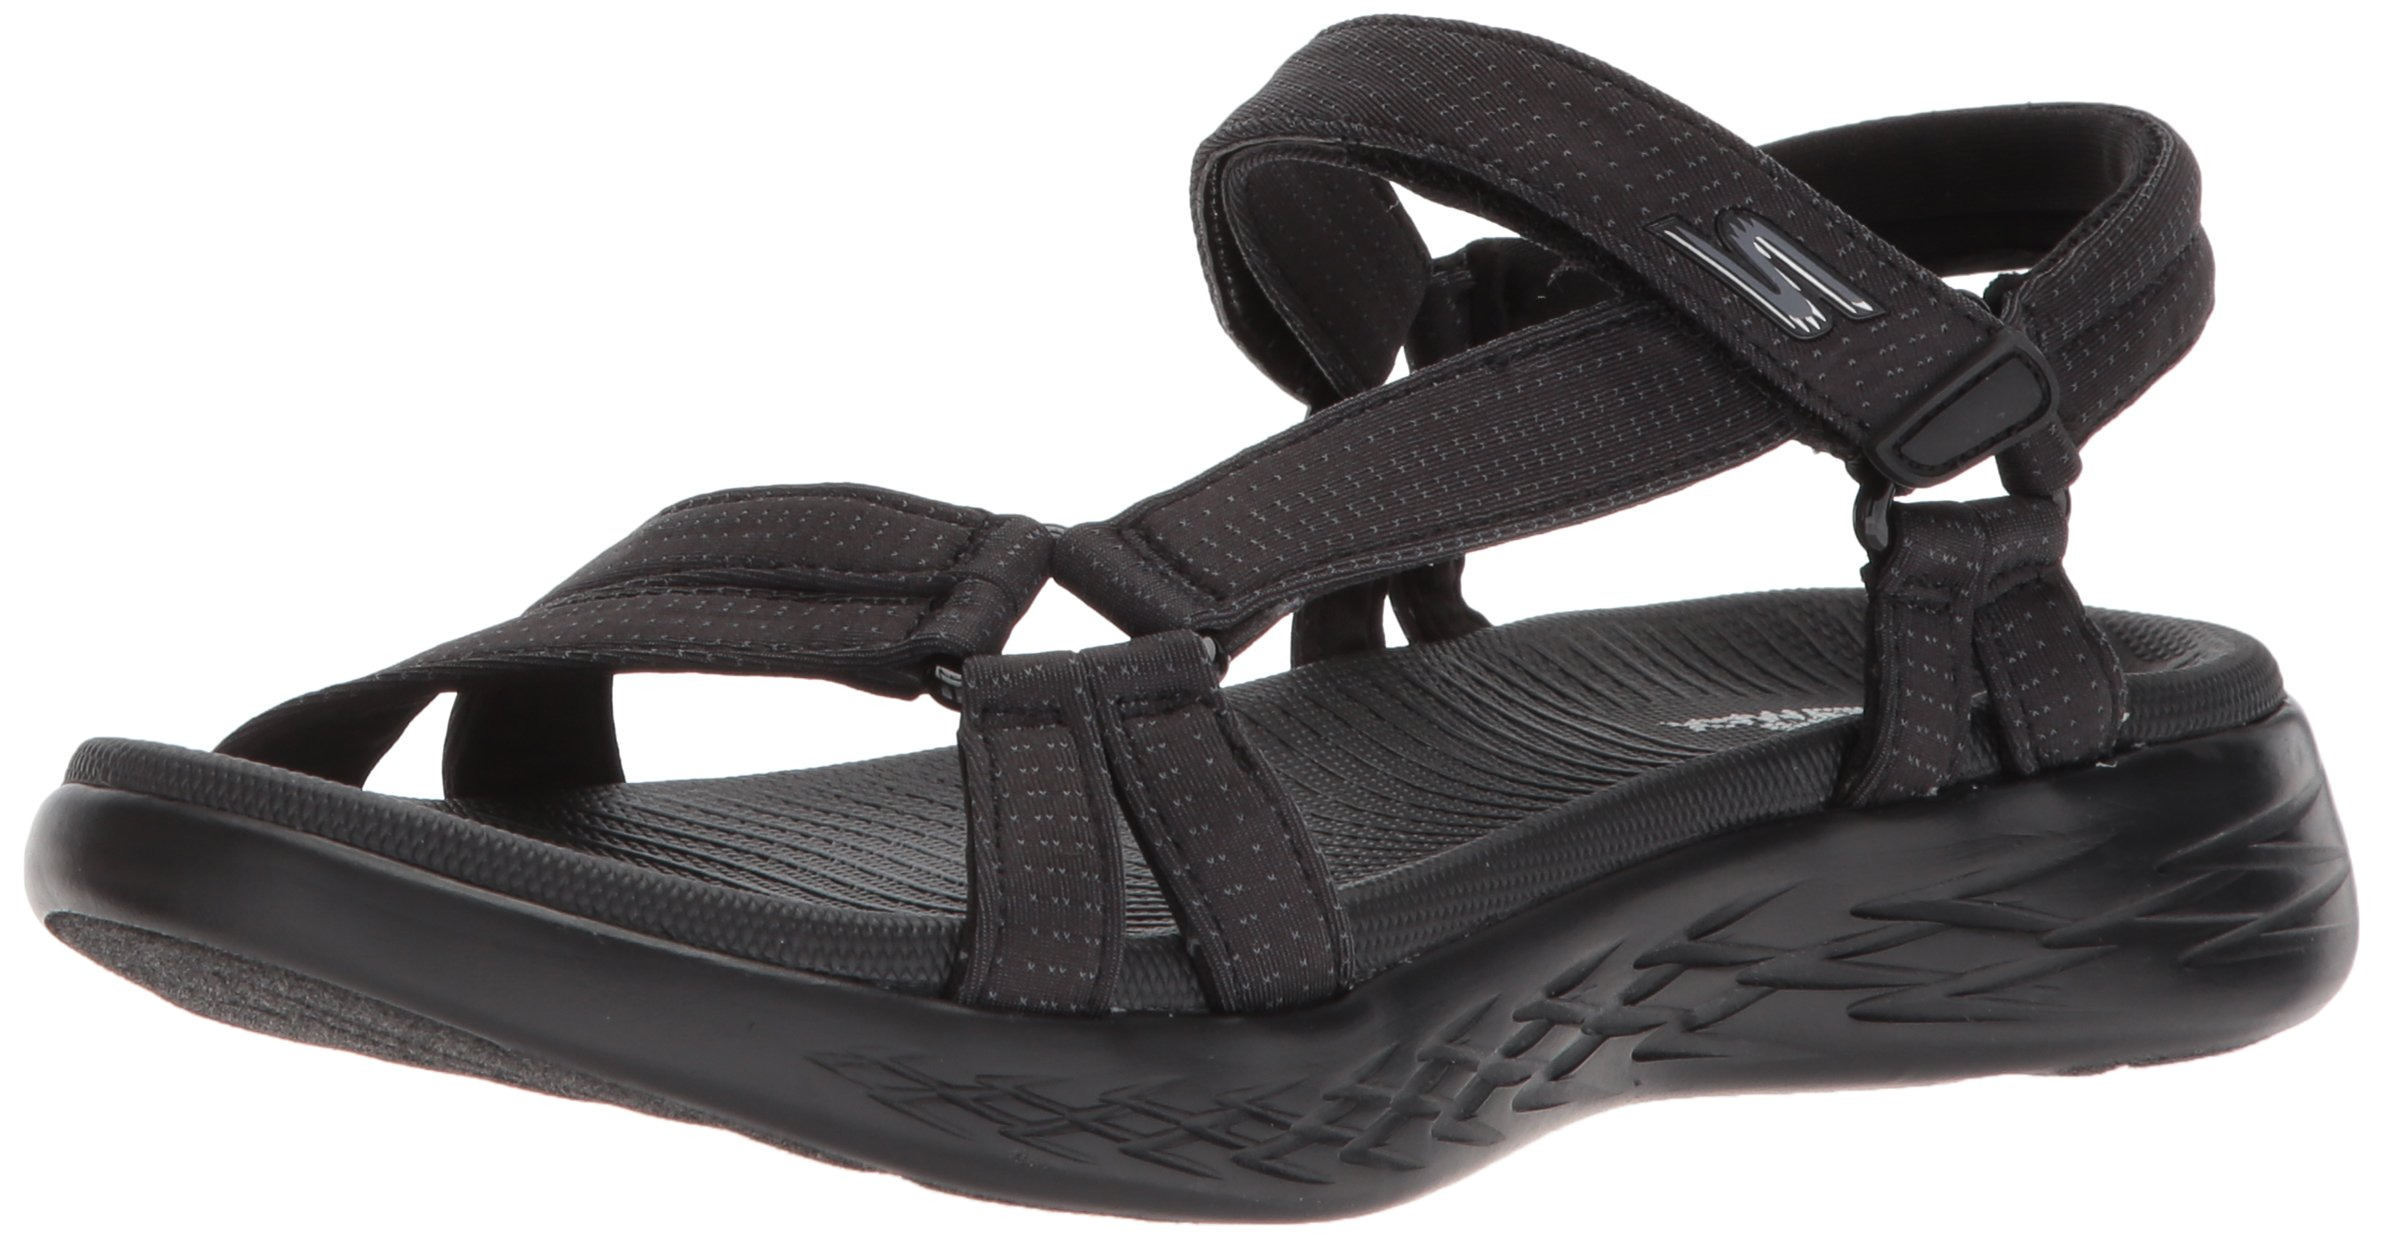 Skechers Performance Women's on-The-Go 600-Brilliancy Sport Sandal, Black, 9 M US